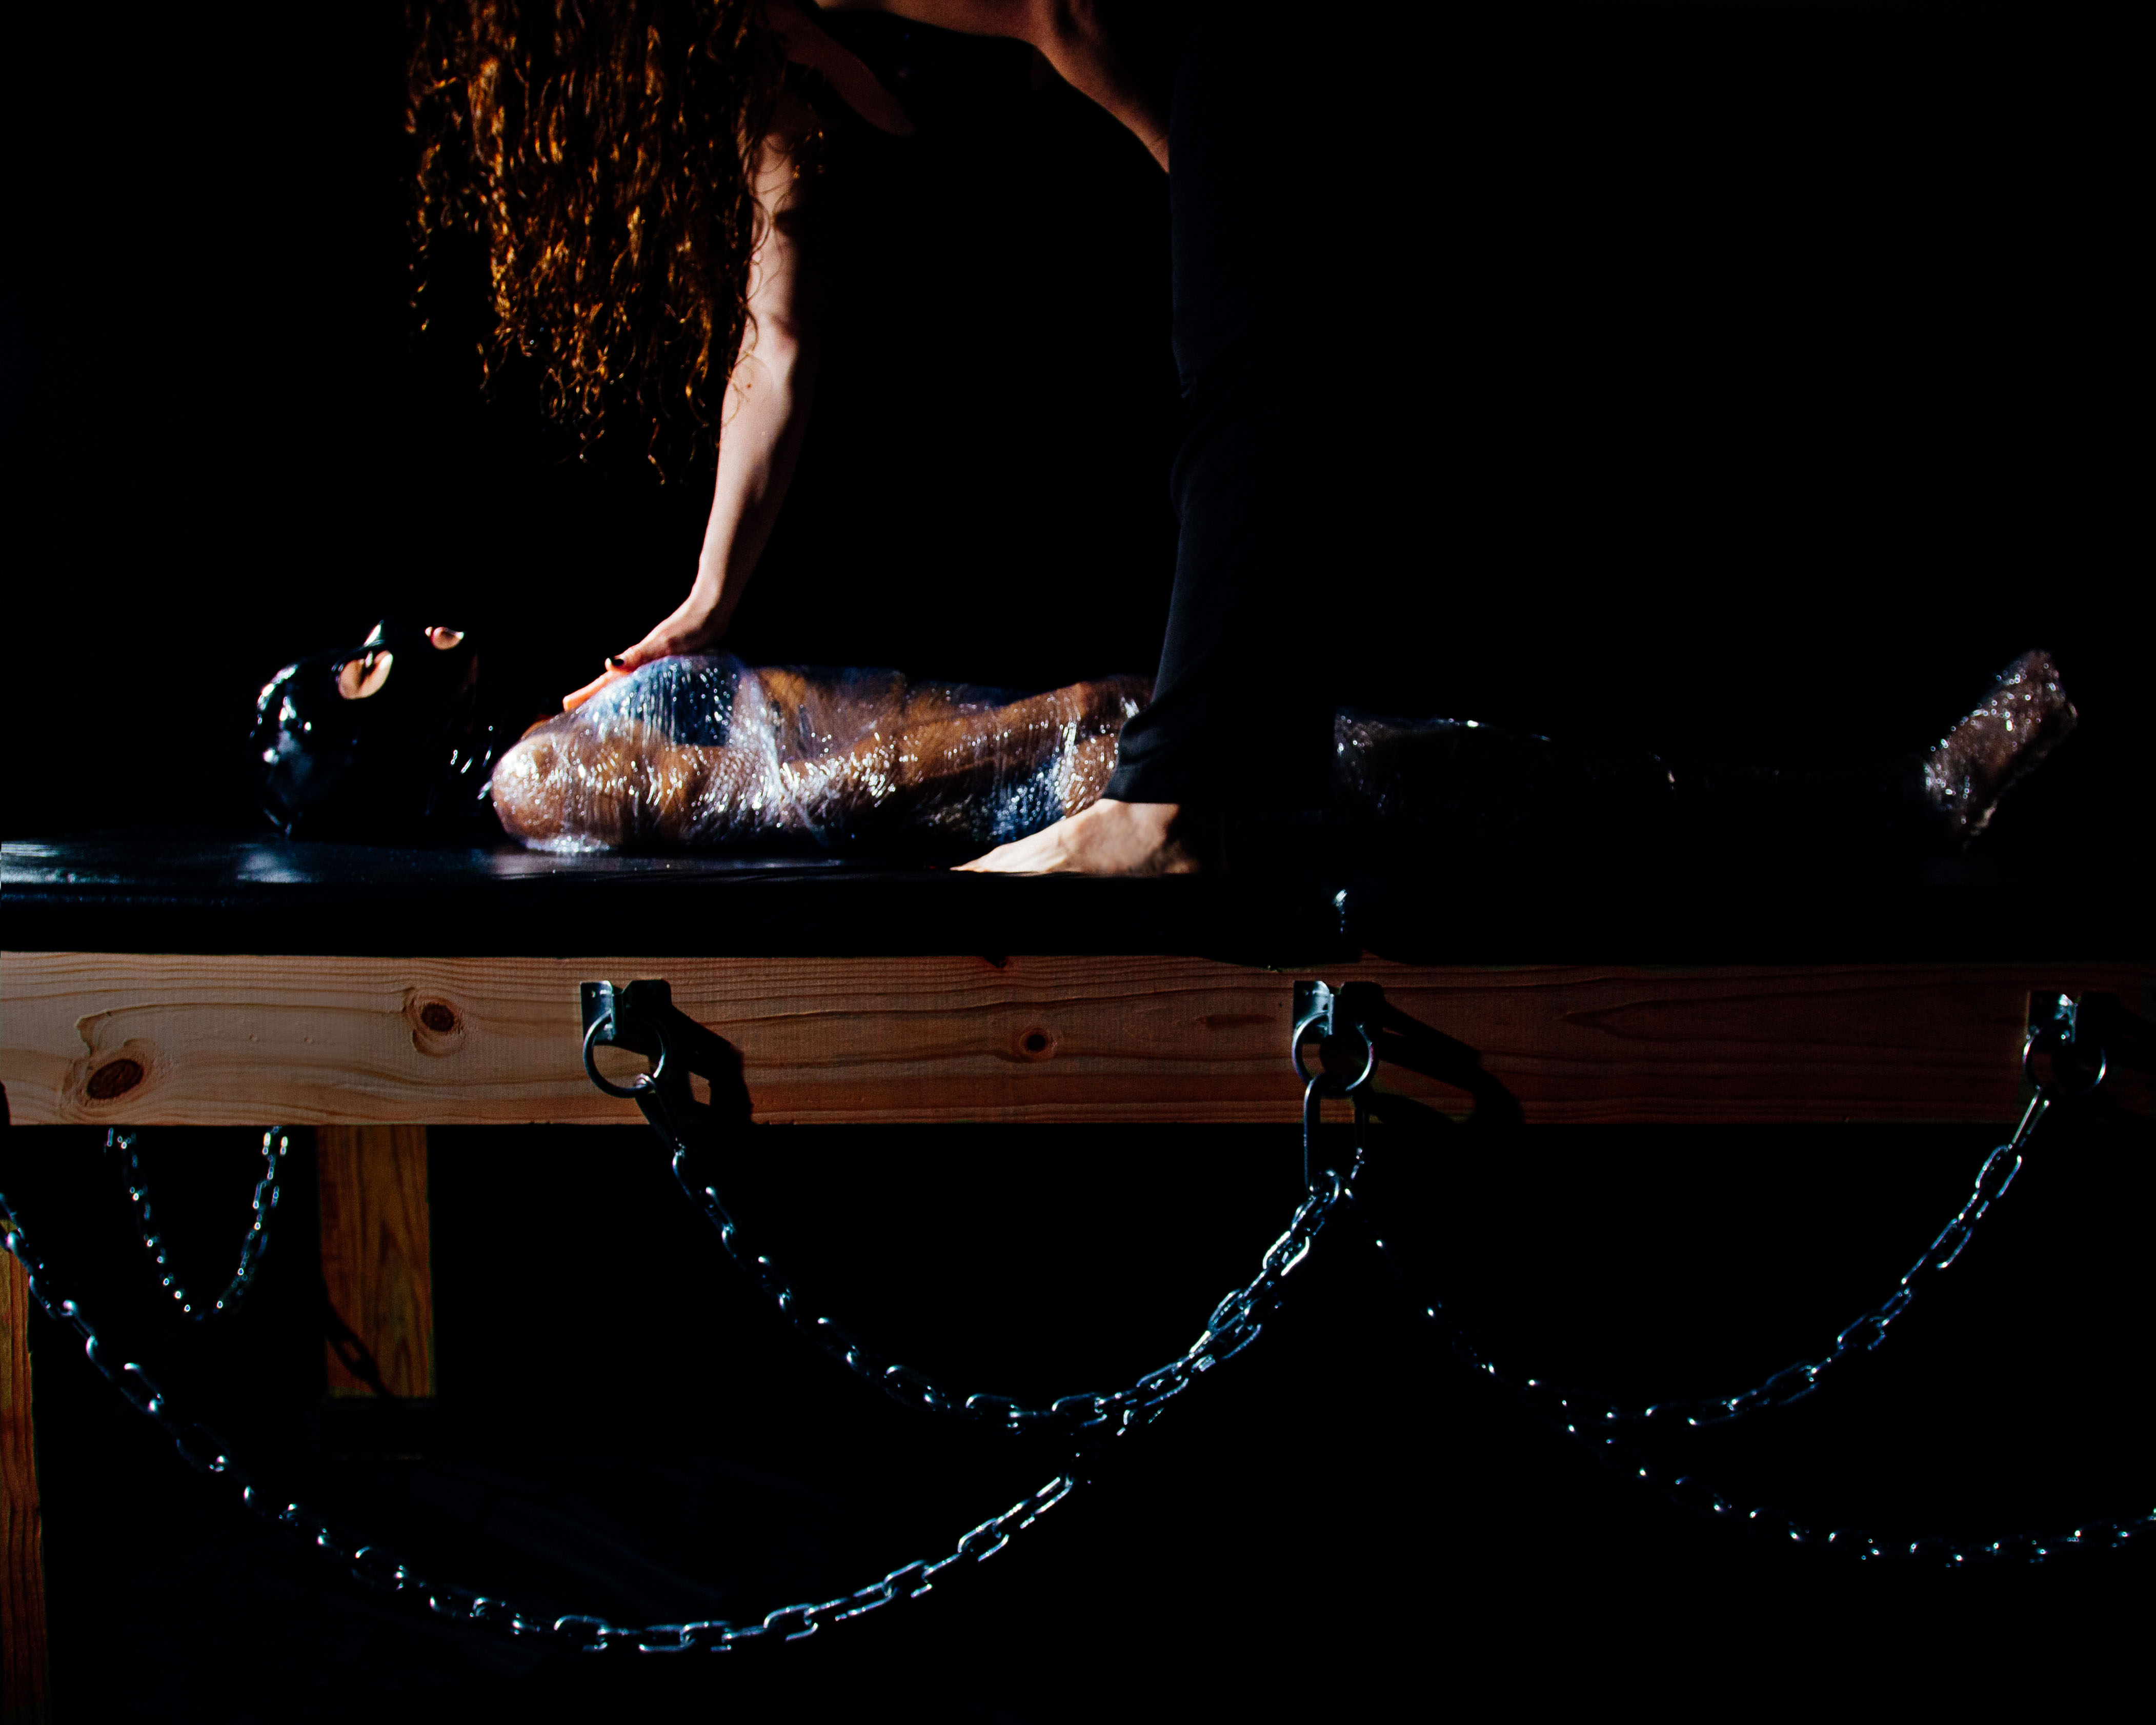 chicago dominatrix bondage table submissive mummification sensory deprivation chains saran wrap dominatrix